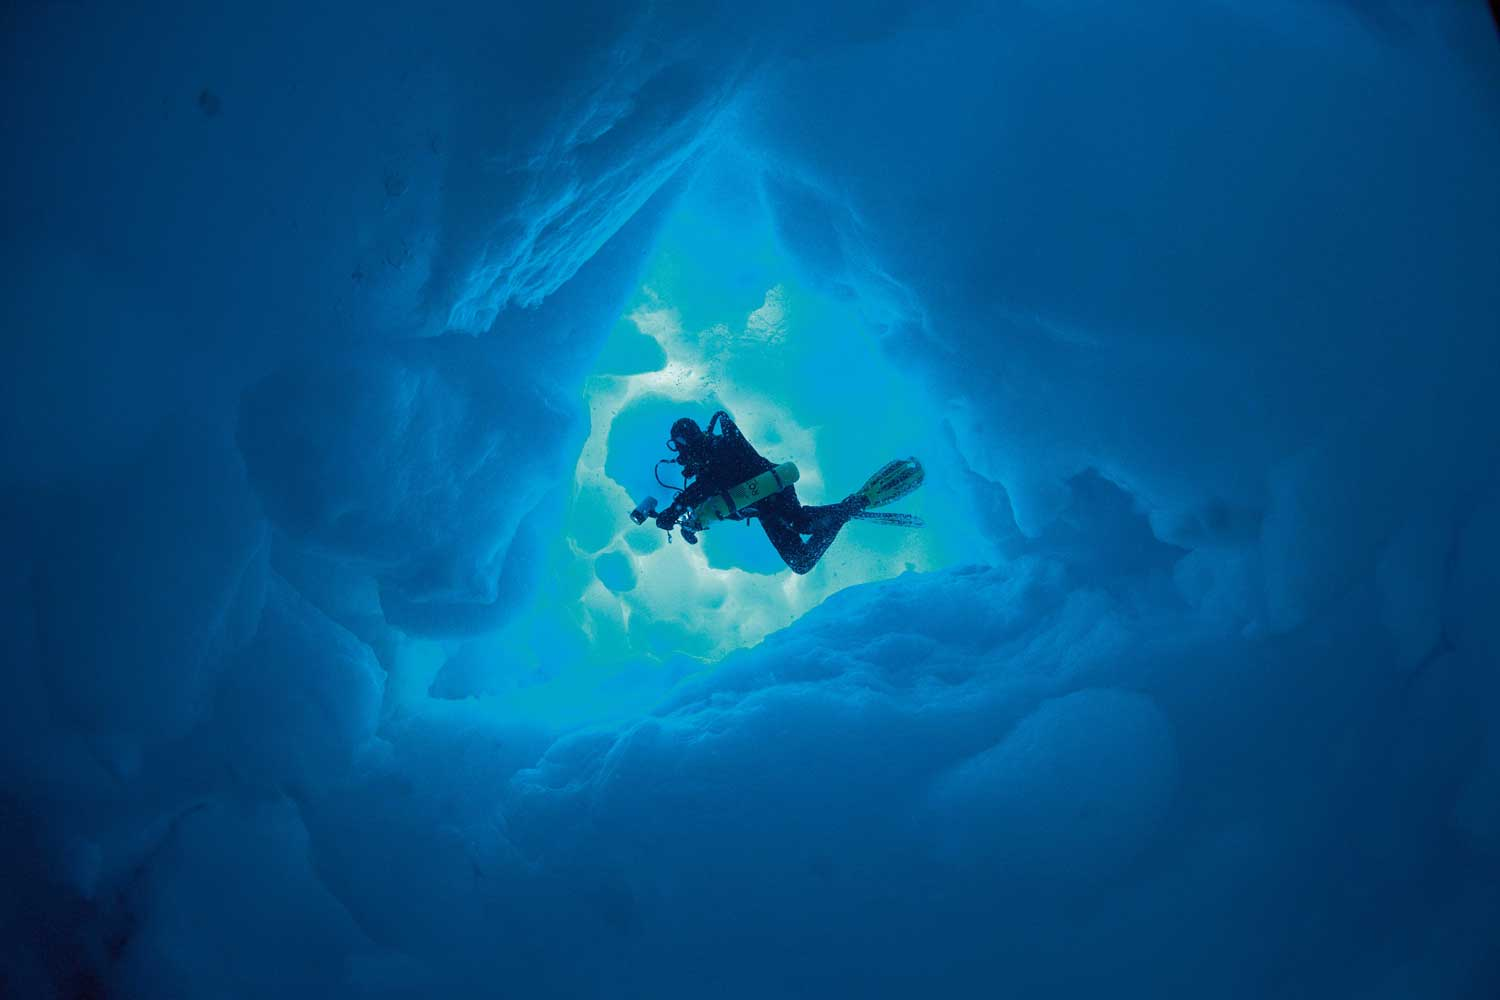 In 2010, Deep Sea Under The Pole by Rolex reported on the world beneath the arctic ice caps